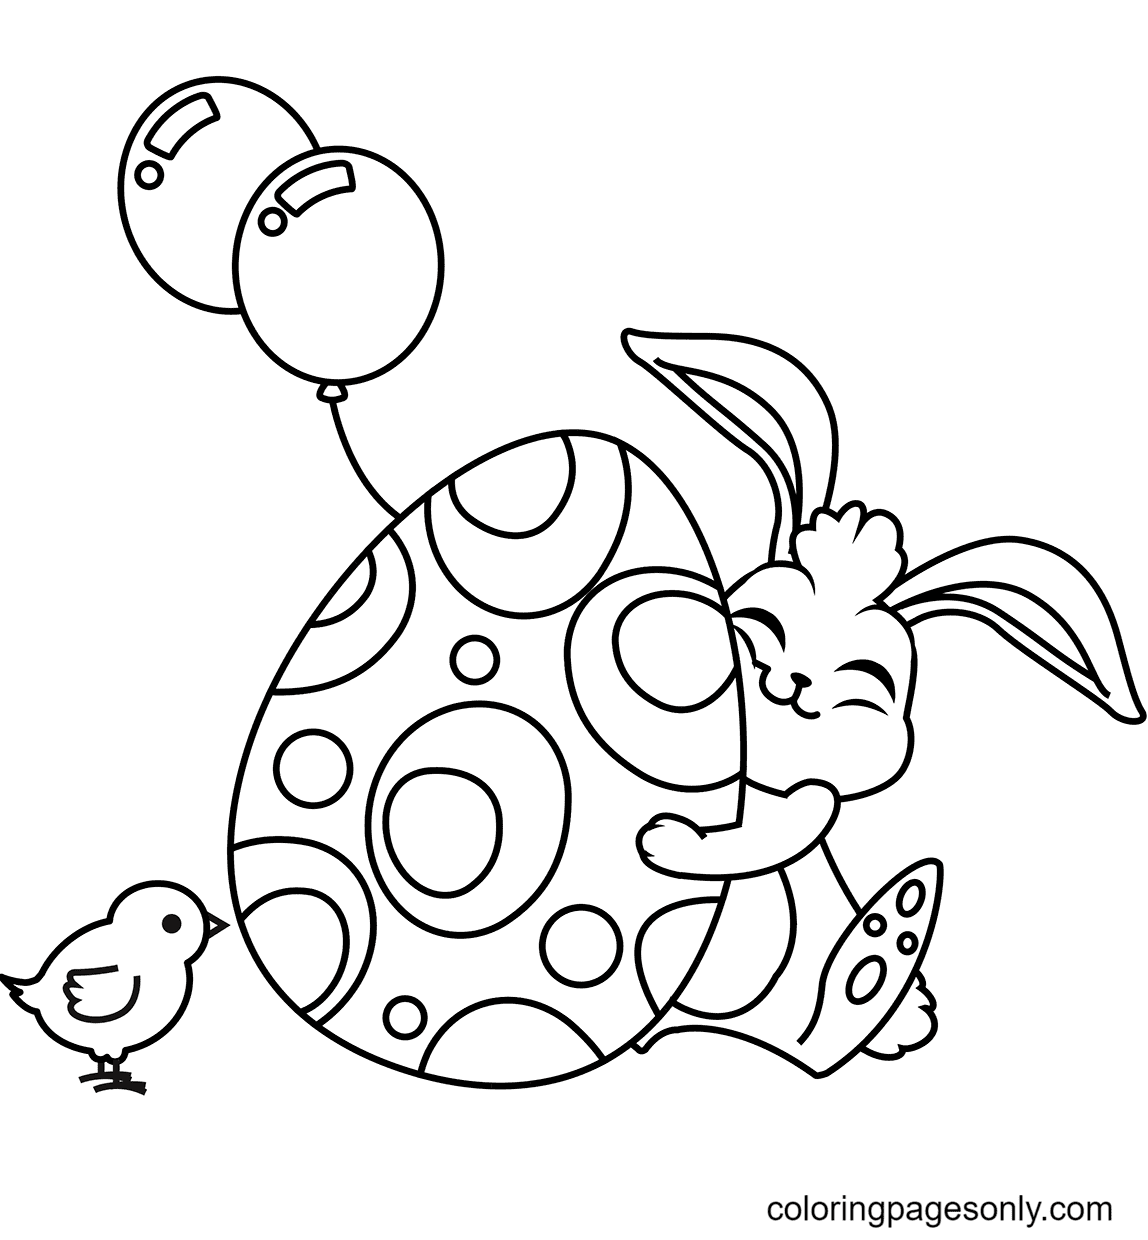 Cute Easter Rabbit Hugging Egg Coloring Page